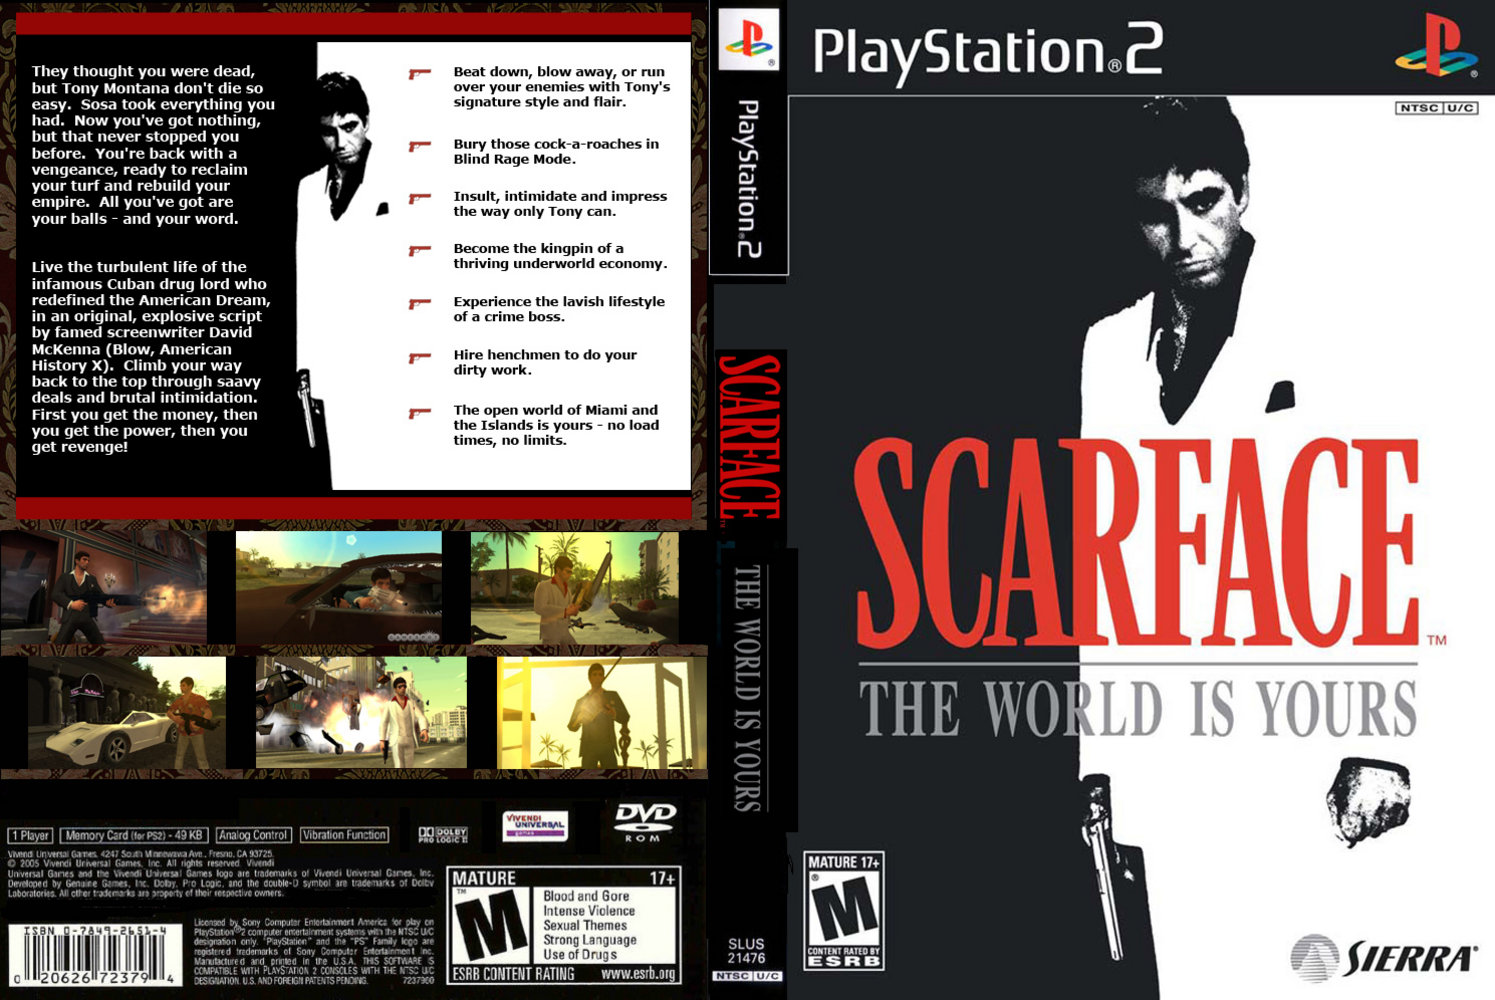 UPDATE: New Scarface game FIX PC Windows 7/8/10 + How to dance